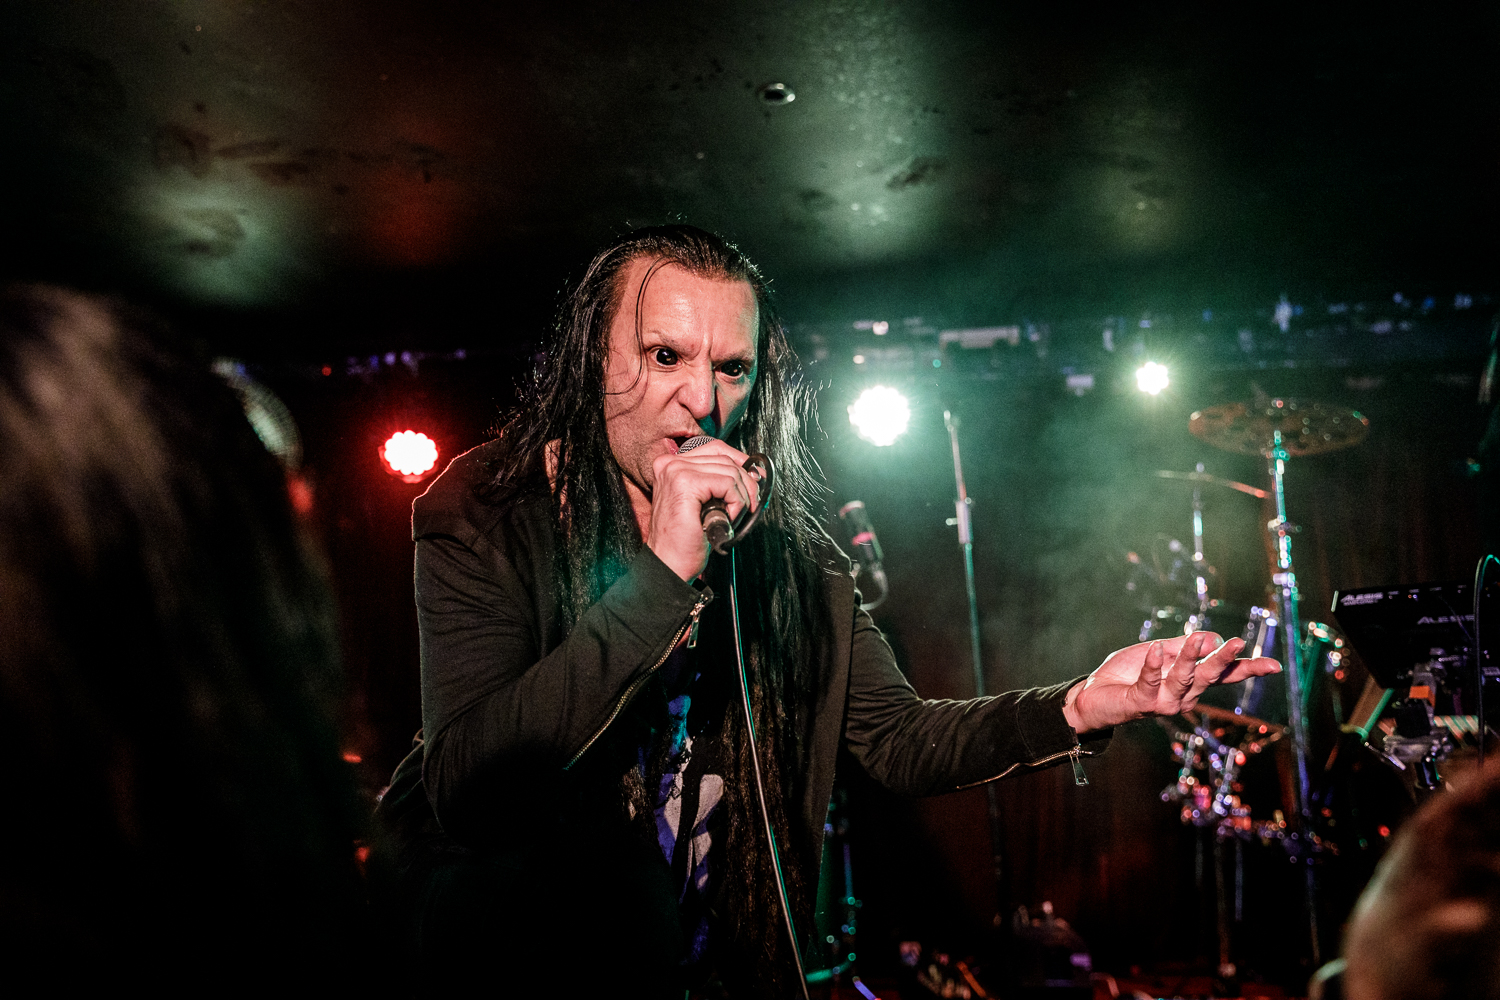 Dead Film Star live at the Ruby Lounge in Manchester on November 23rd 2018. ©Johann Wierzbicki | ROCKFLESH